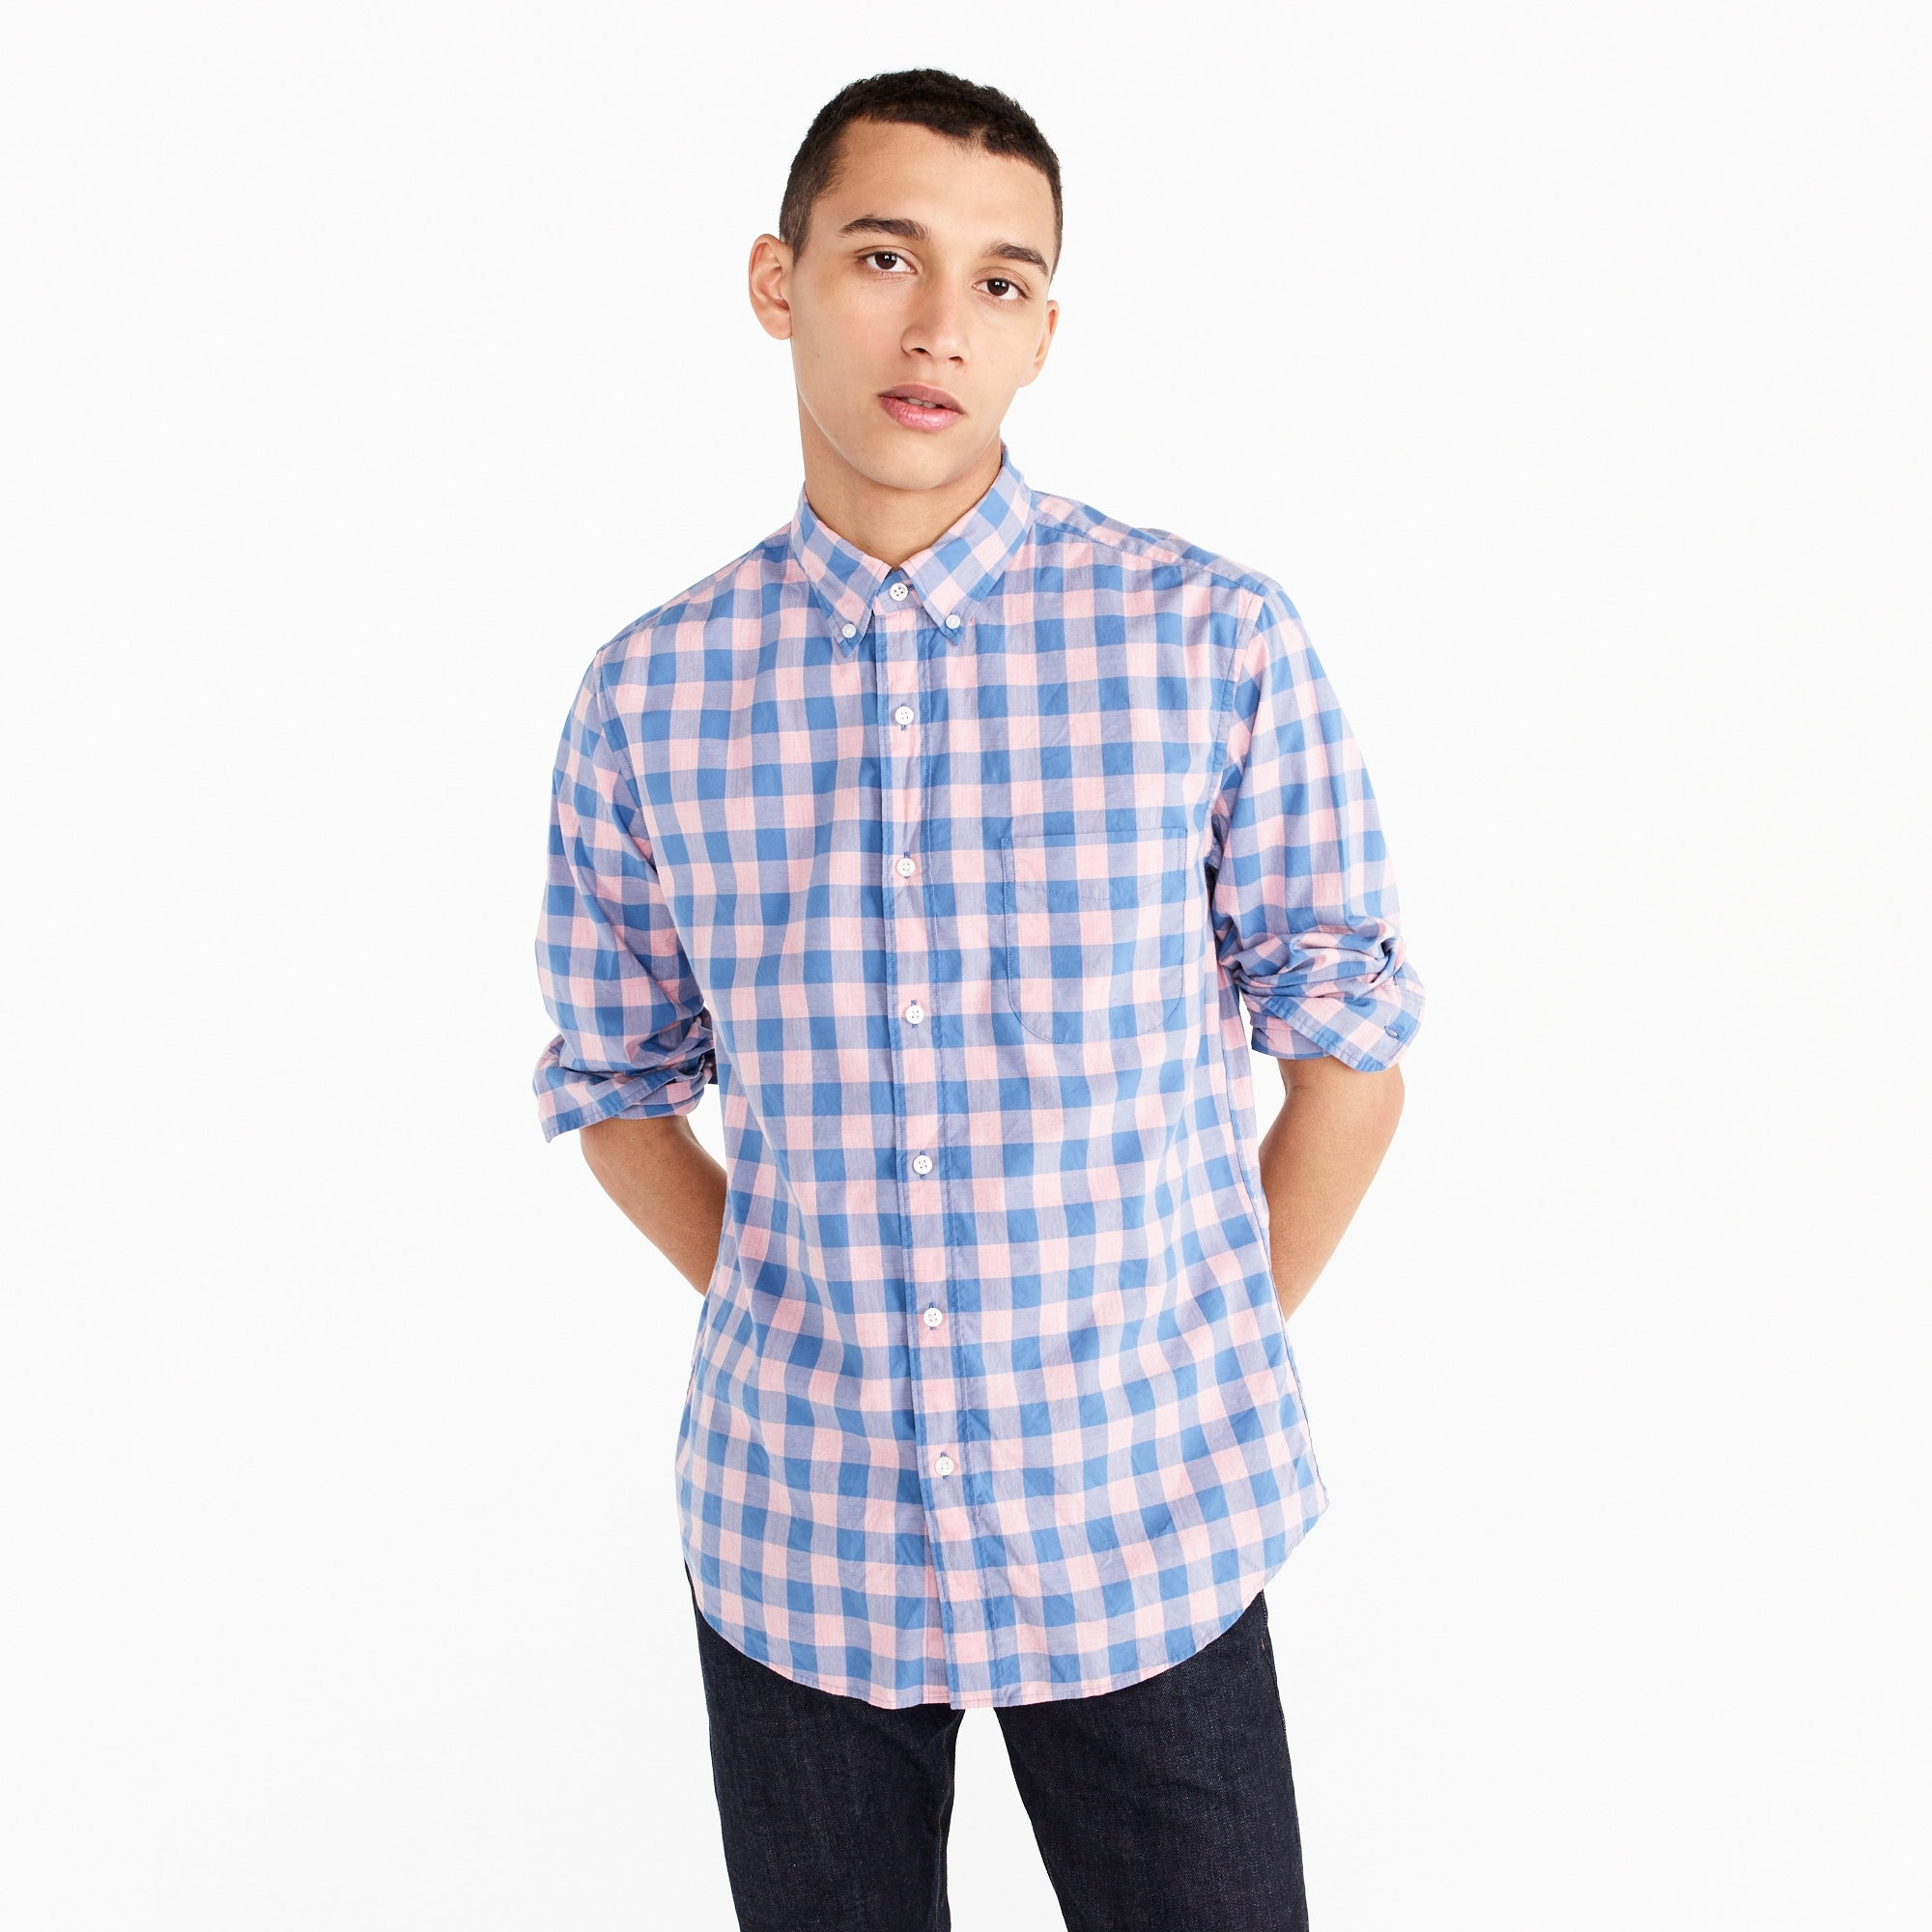 Stretch Secret Wash shirt in heather peony gingham men new arrivals c